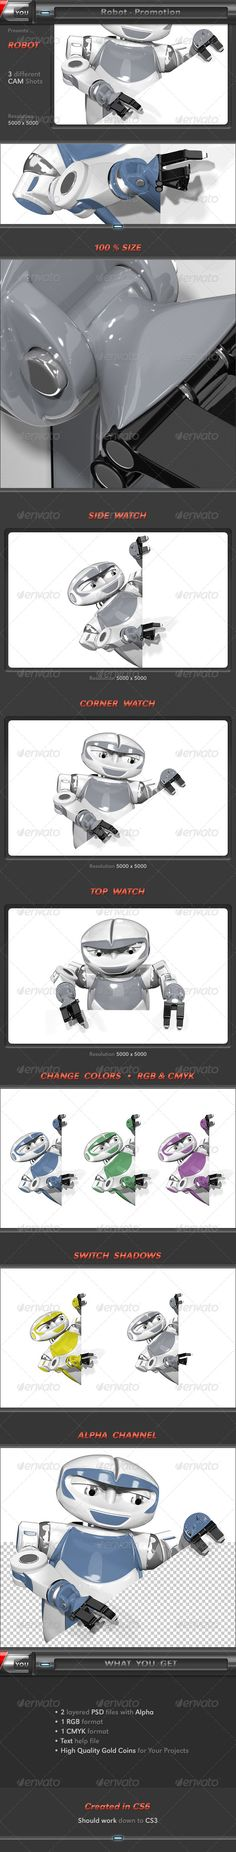 Here is my little robot for promotion in high quality. He helps you to promote your Designs / Products / Events / Websites and man